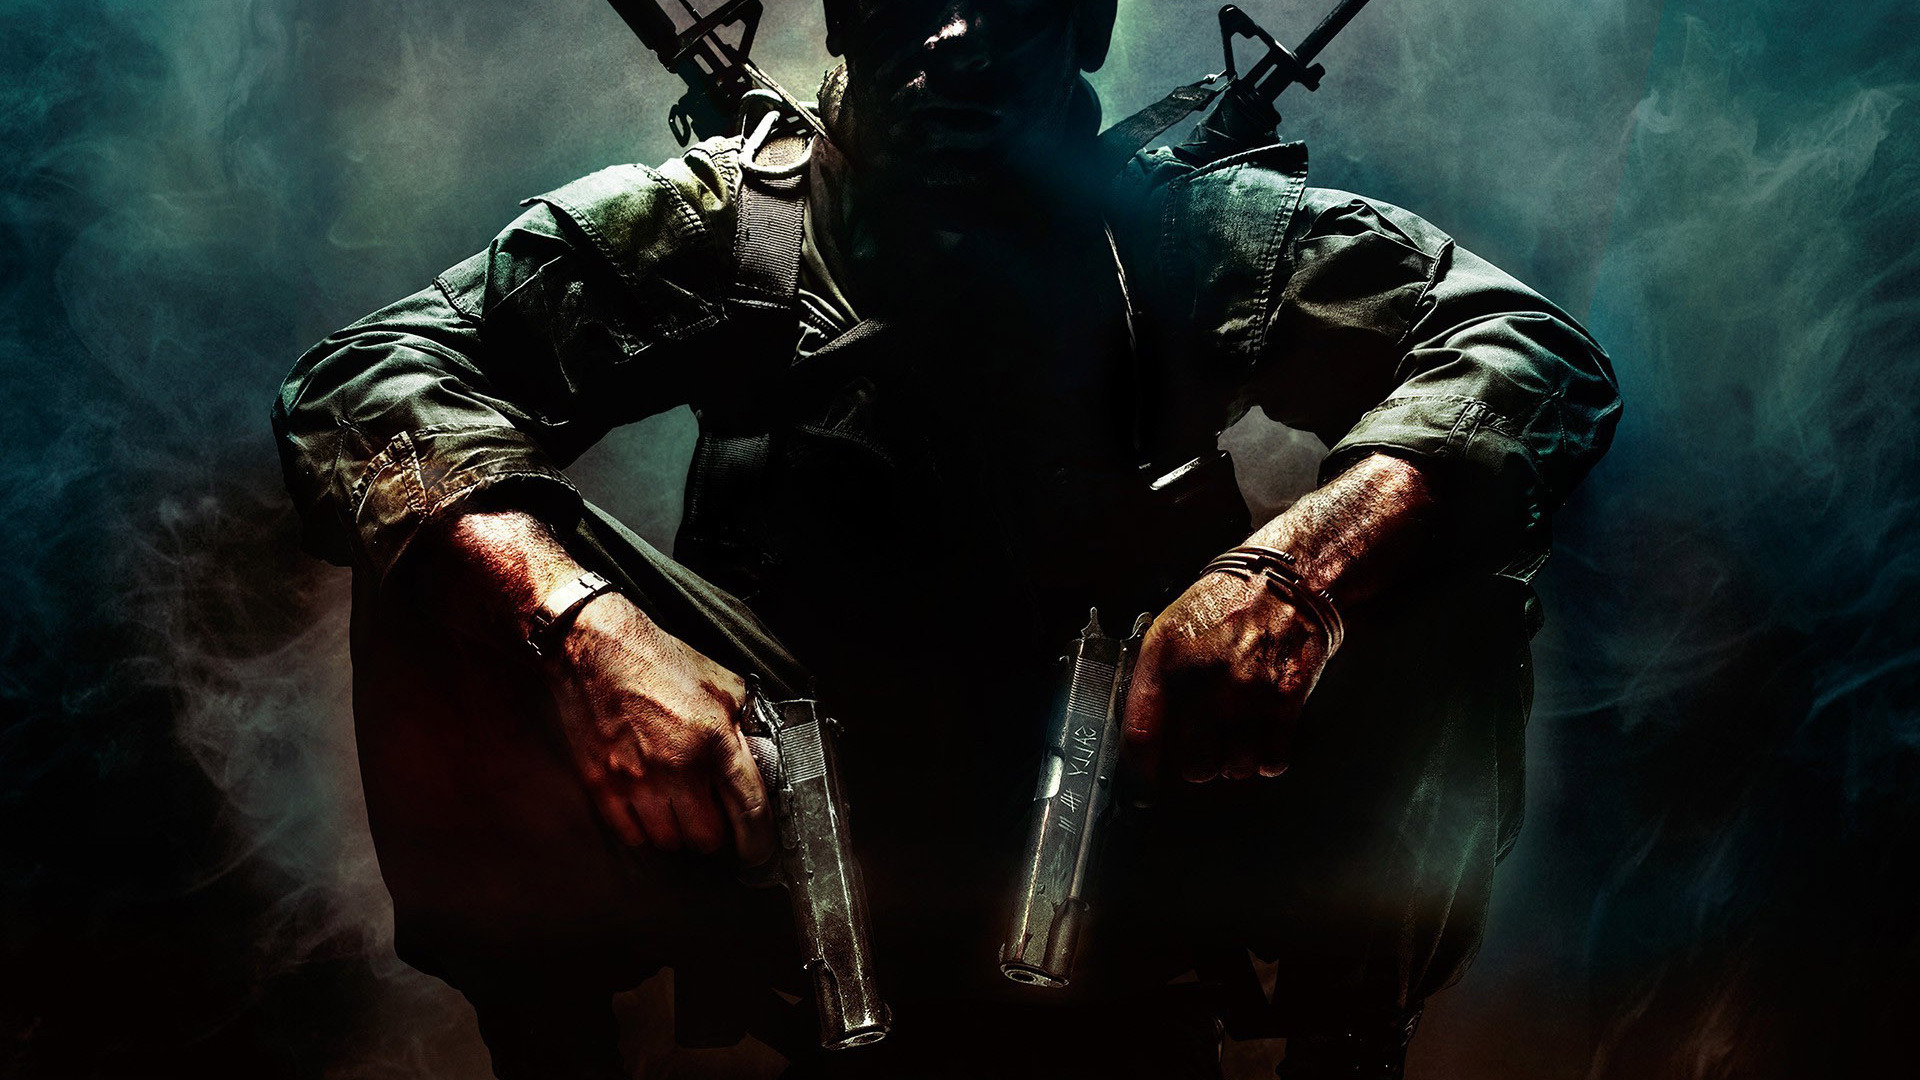 Download Call of Duty   A Black Ops wallpaper 1920x1080